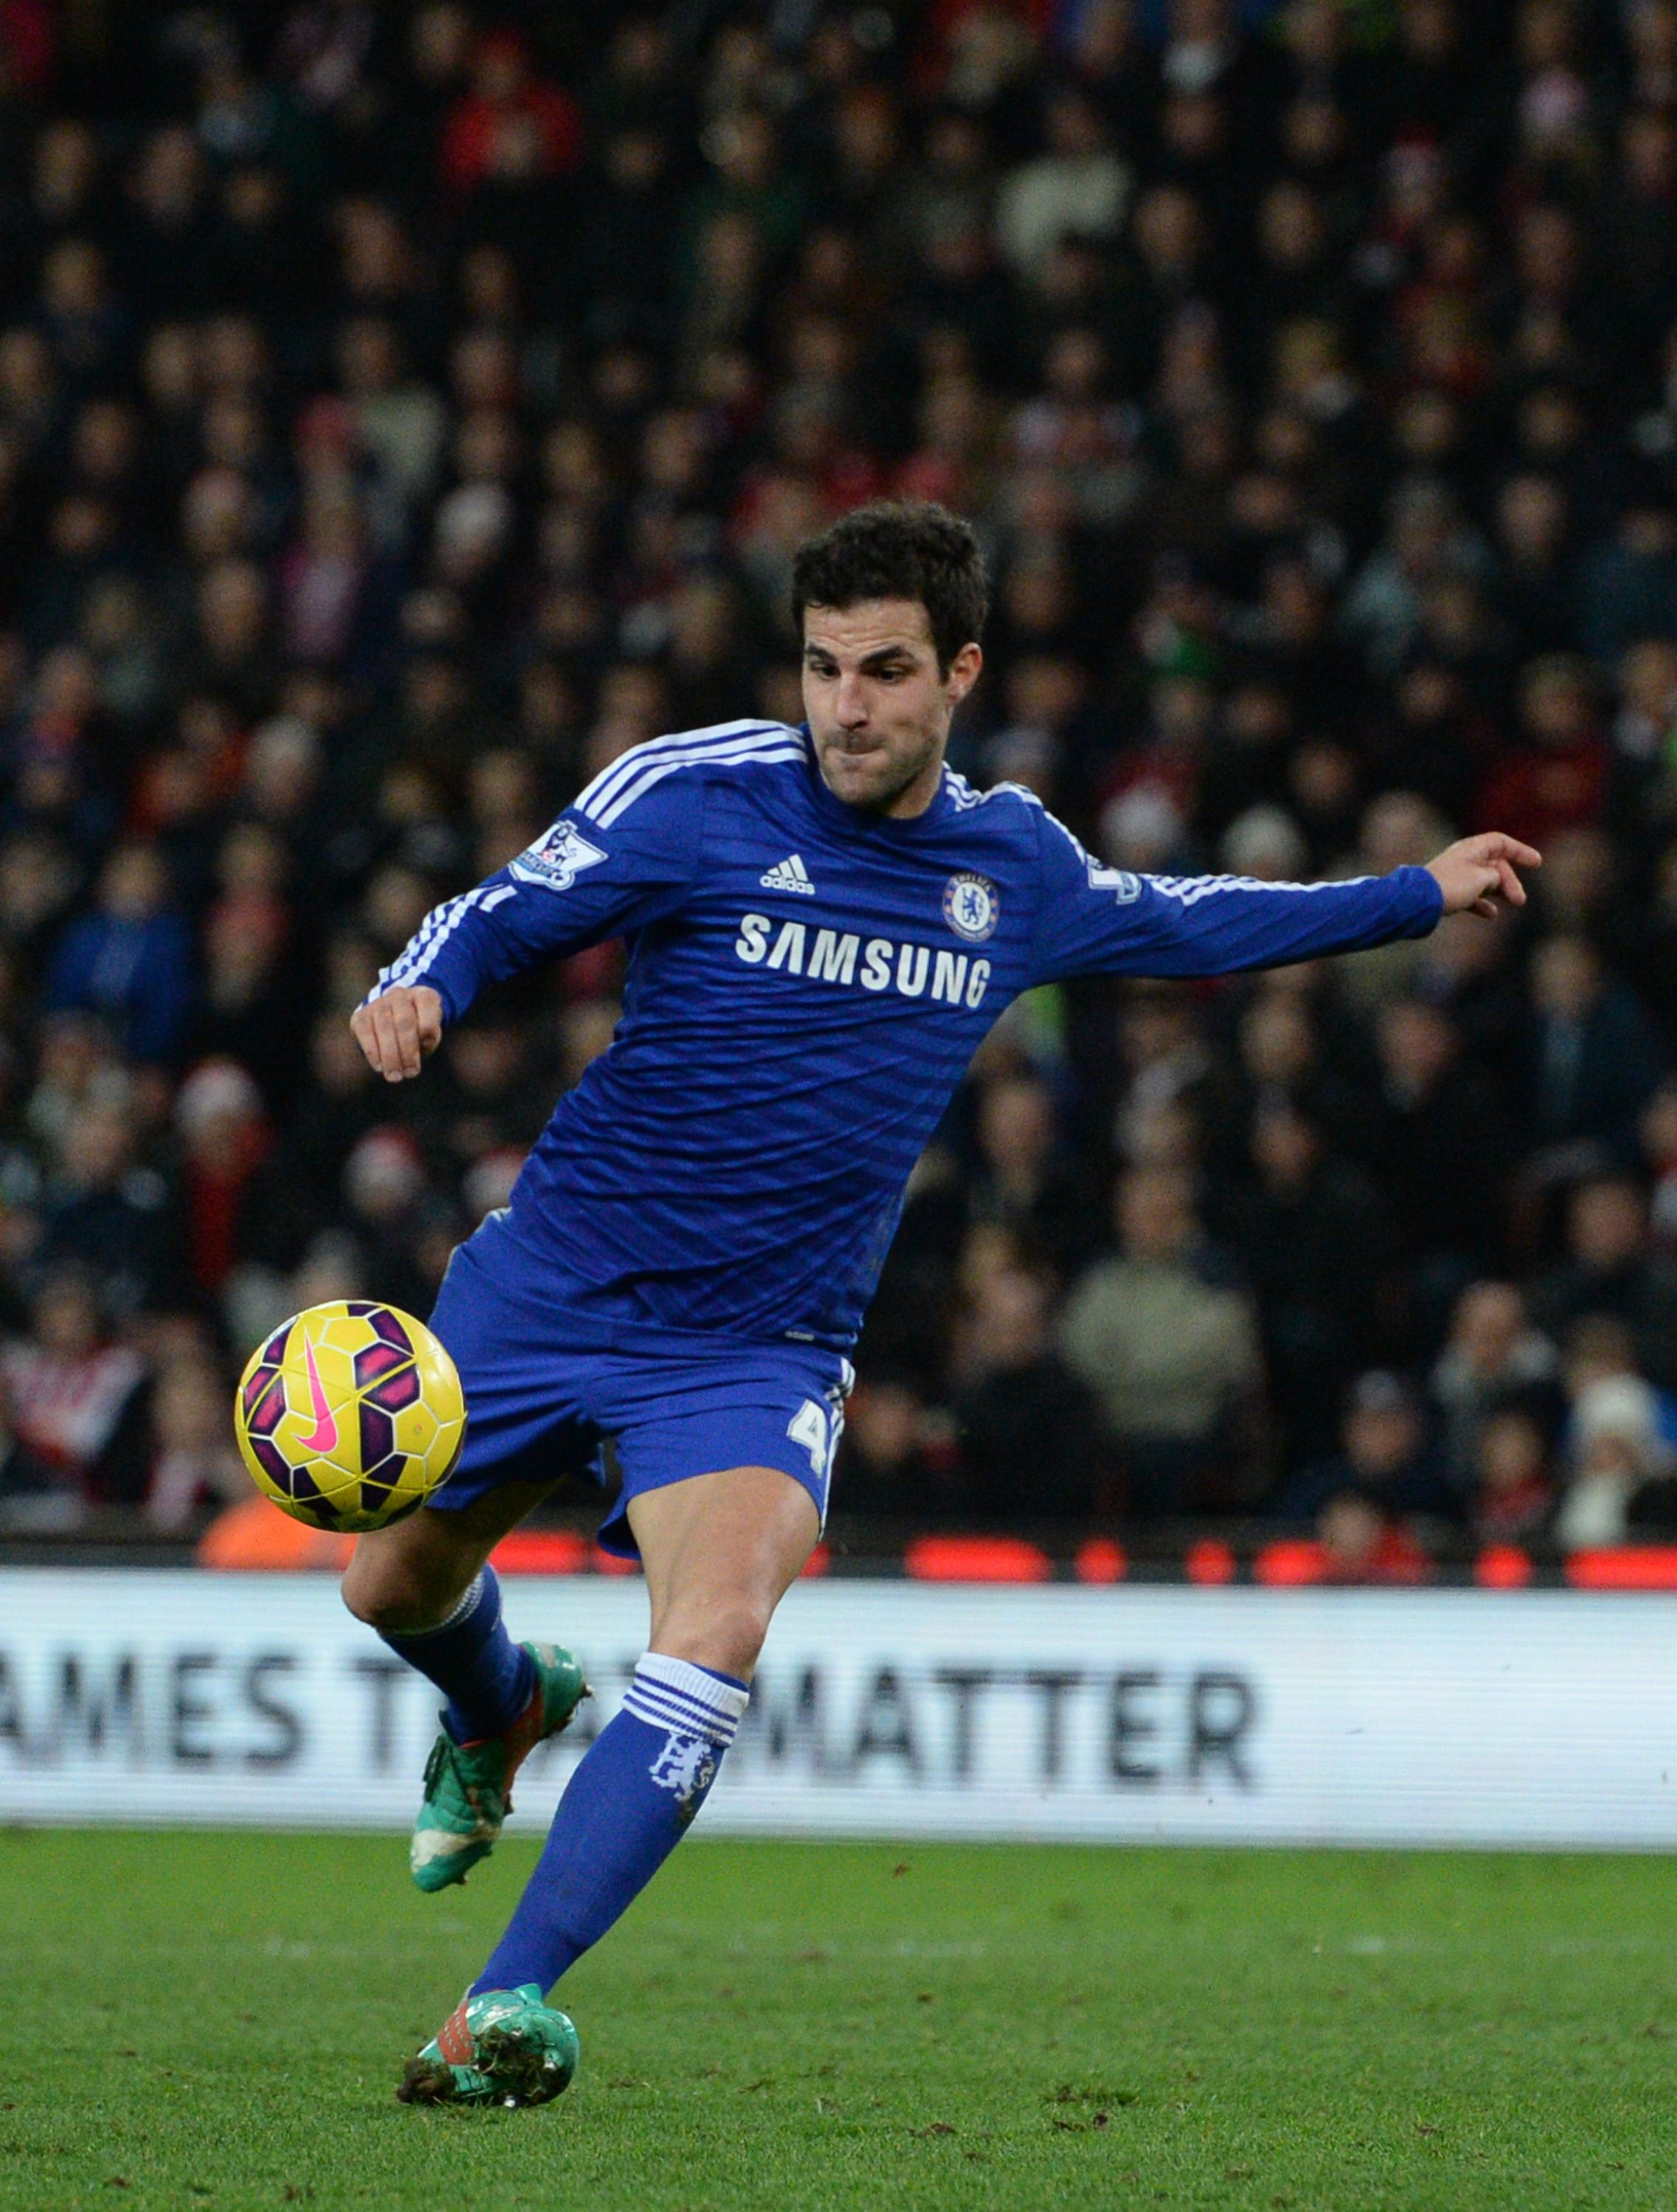 Cesc Fabregas scored the winning goal for Chelsea FC against QPR today.  Chelsea retain their 5af628fd5c9af